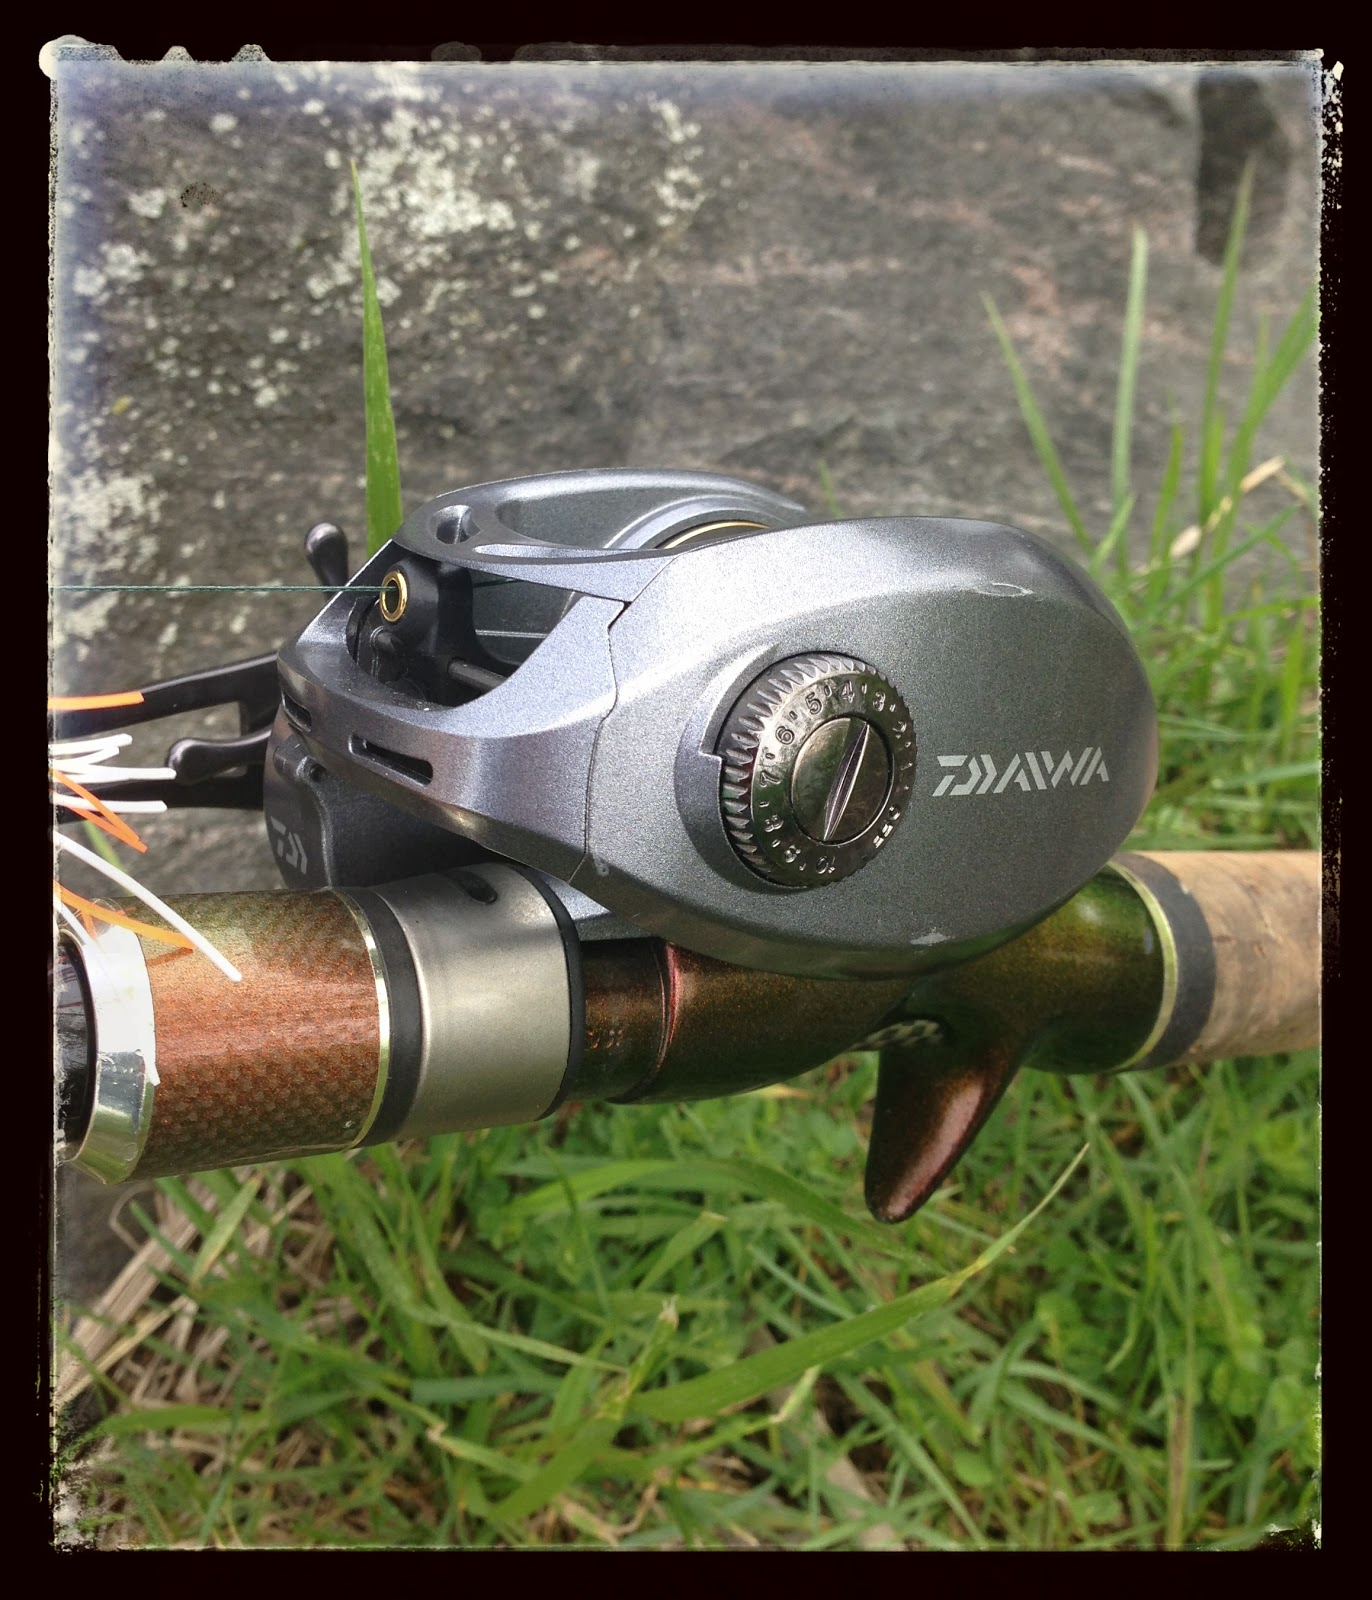 495eb99ddc0 ... the case anymore, as Daiwa is becoming more an more available to  smaller retailers (a low price point high quality reel like the Lexa makes  this easier)